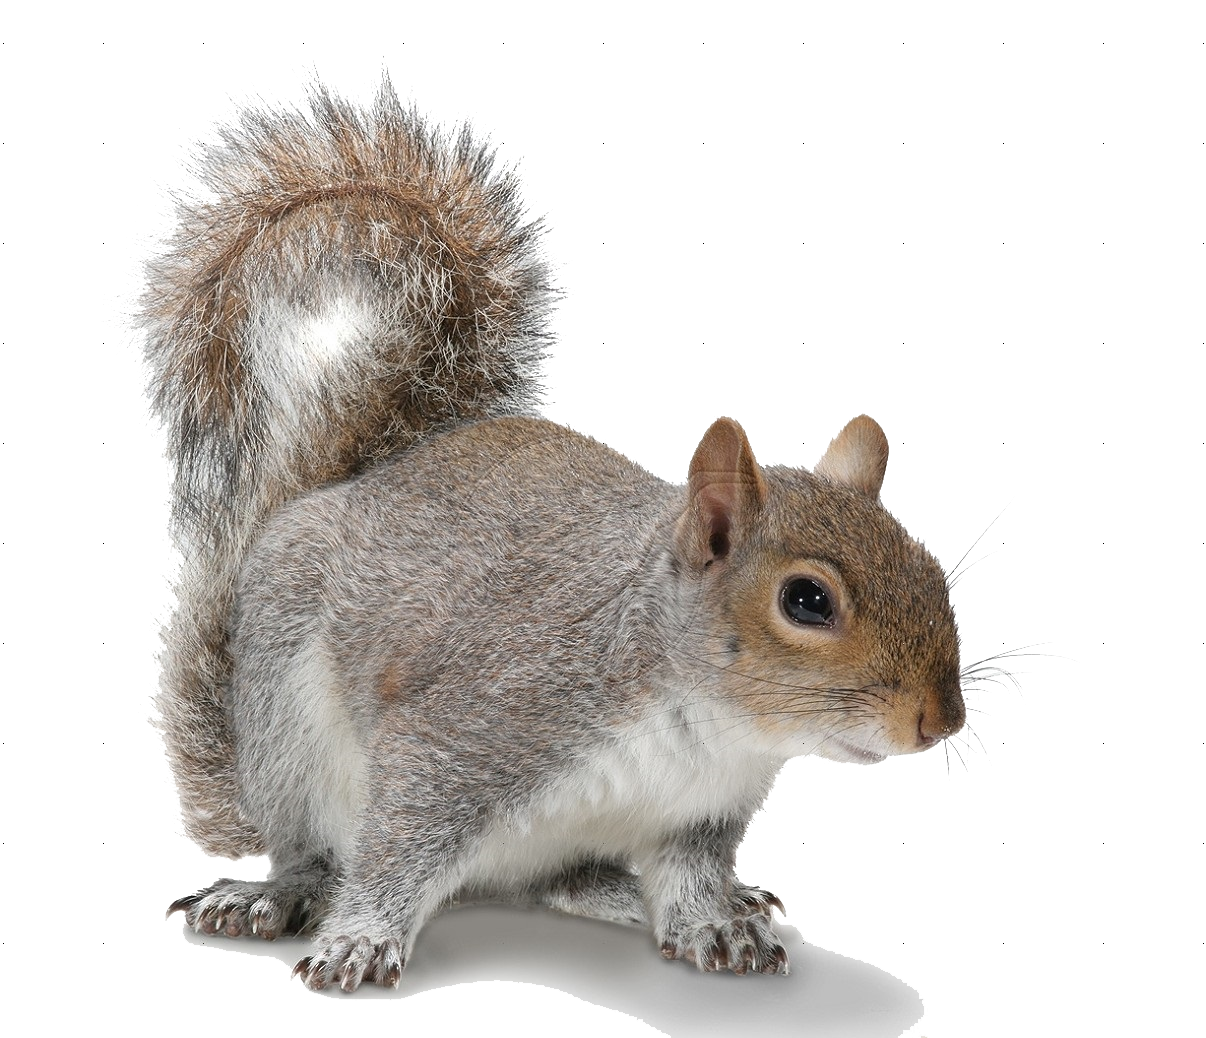 download squirrel picture hq png image freepngimg squirrel clipart black and white squirrel clipart with no background